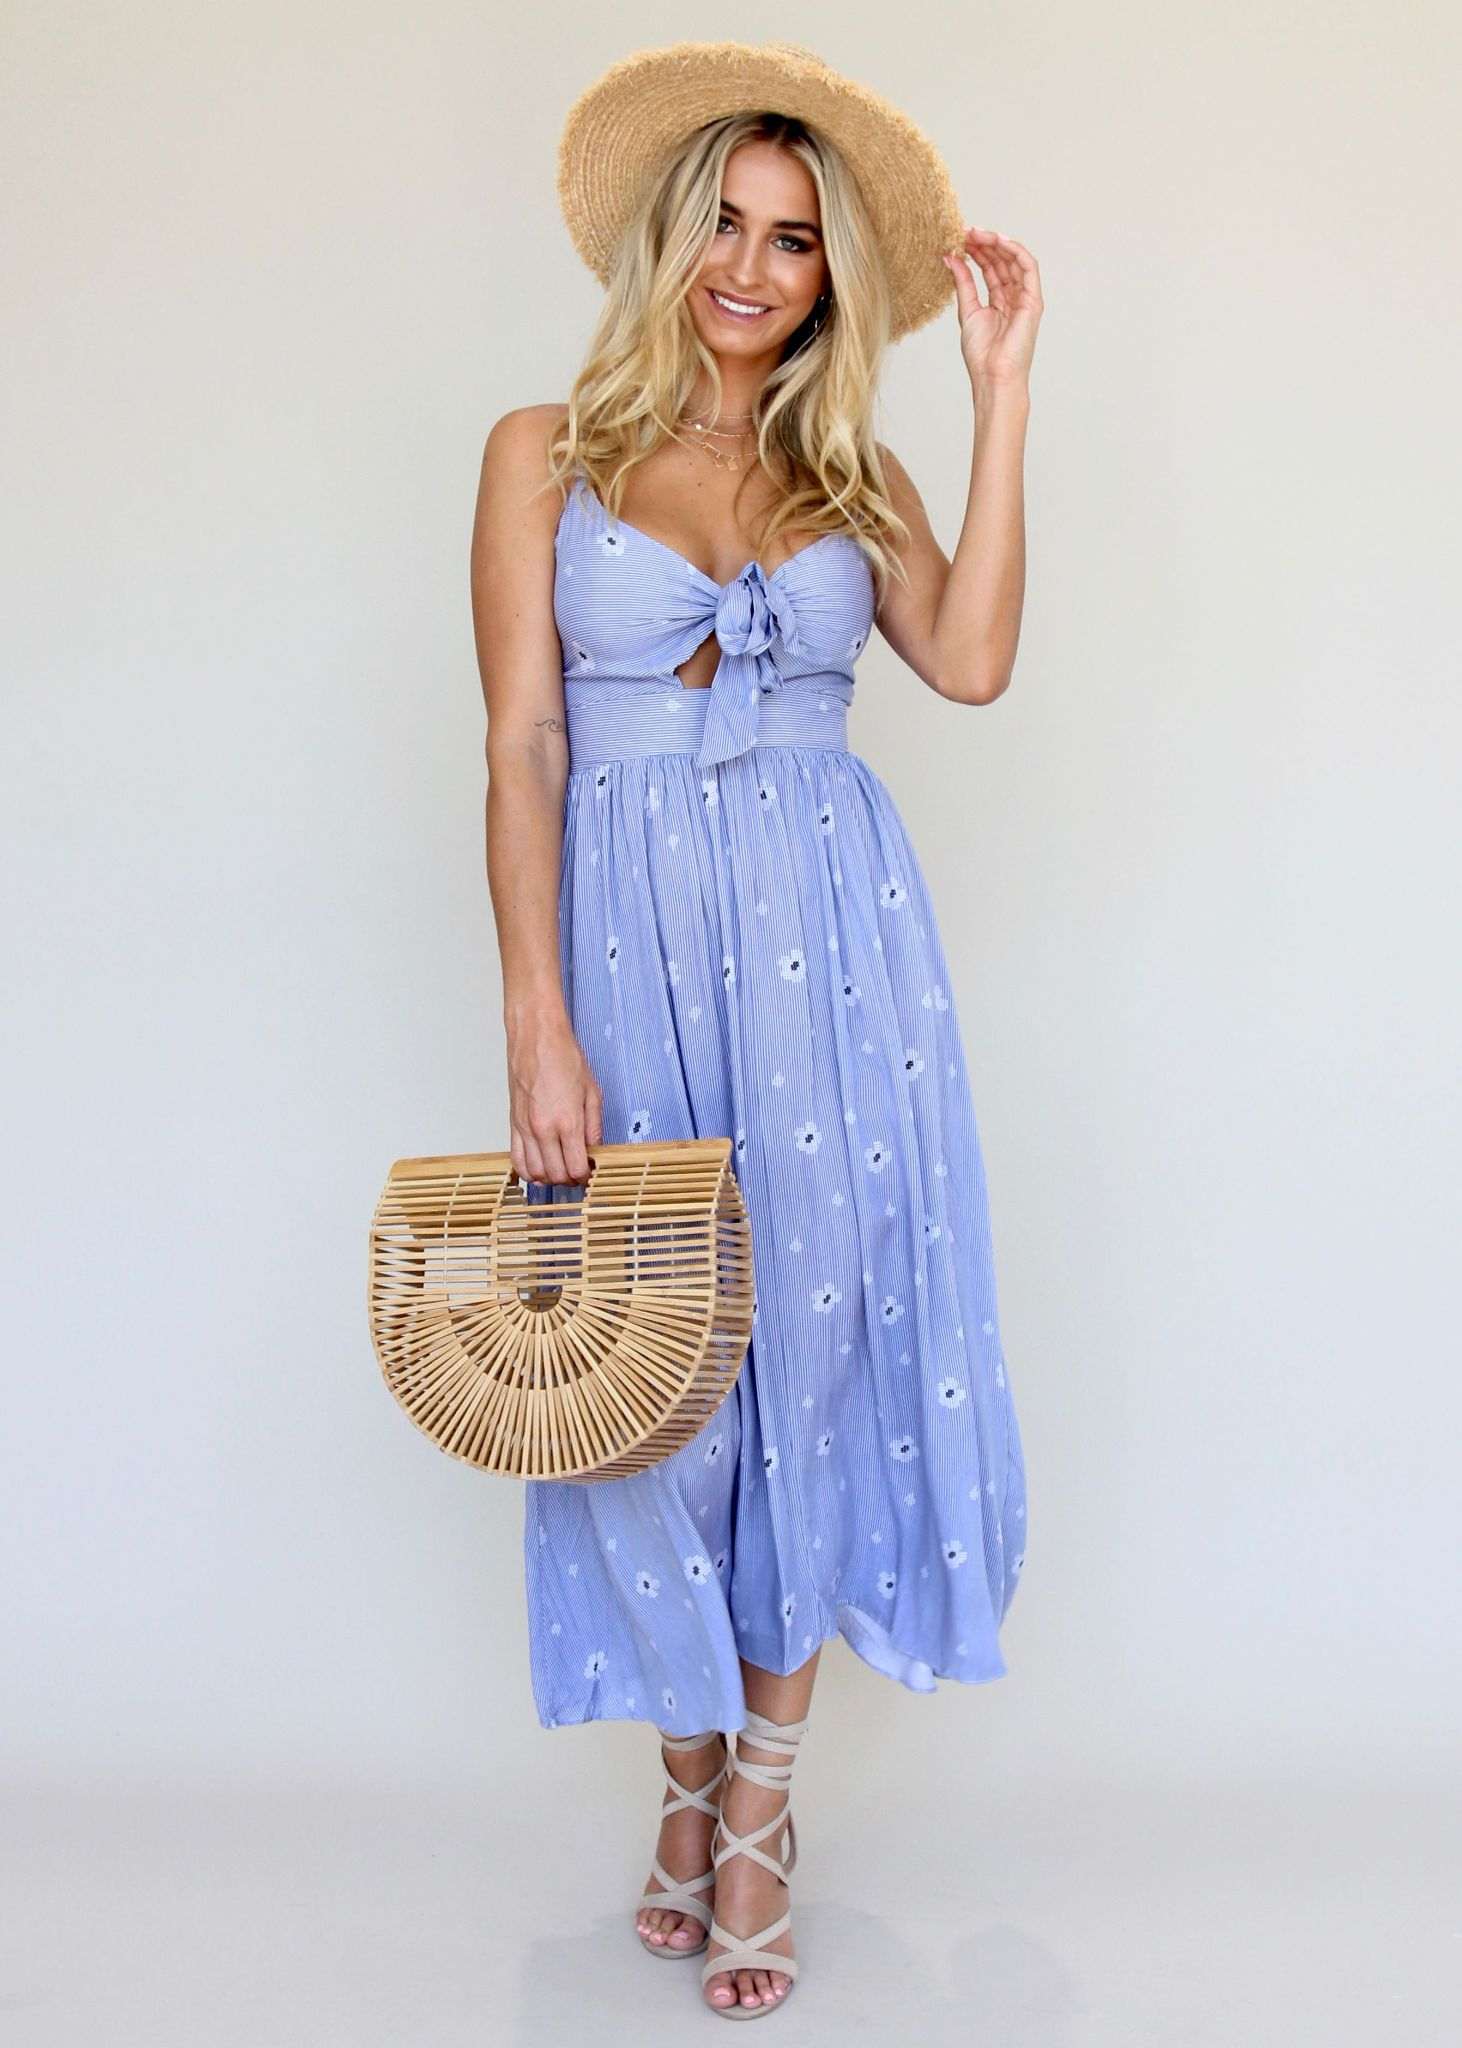 Cool Waters Dress - Light Blue